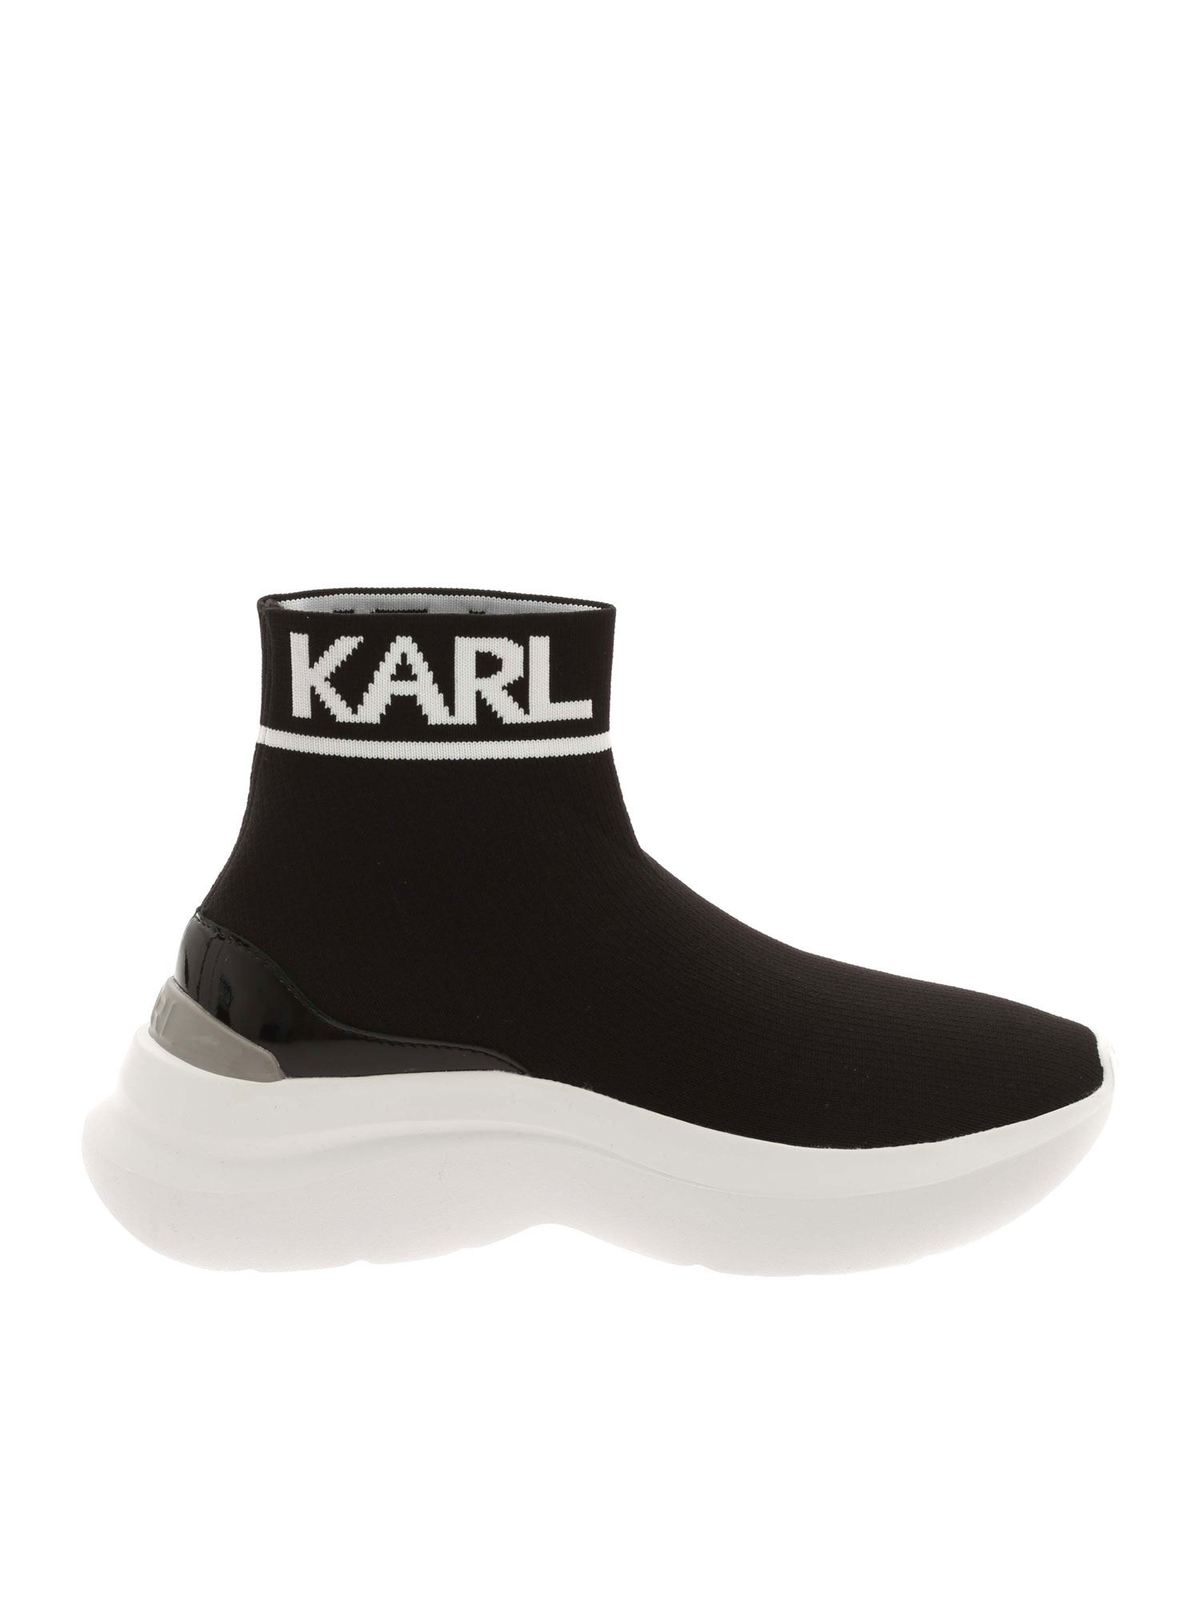 KARL LAGERFELD SKYLINE SNEAKERS IN BLACK